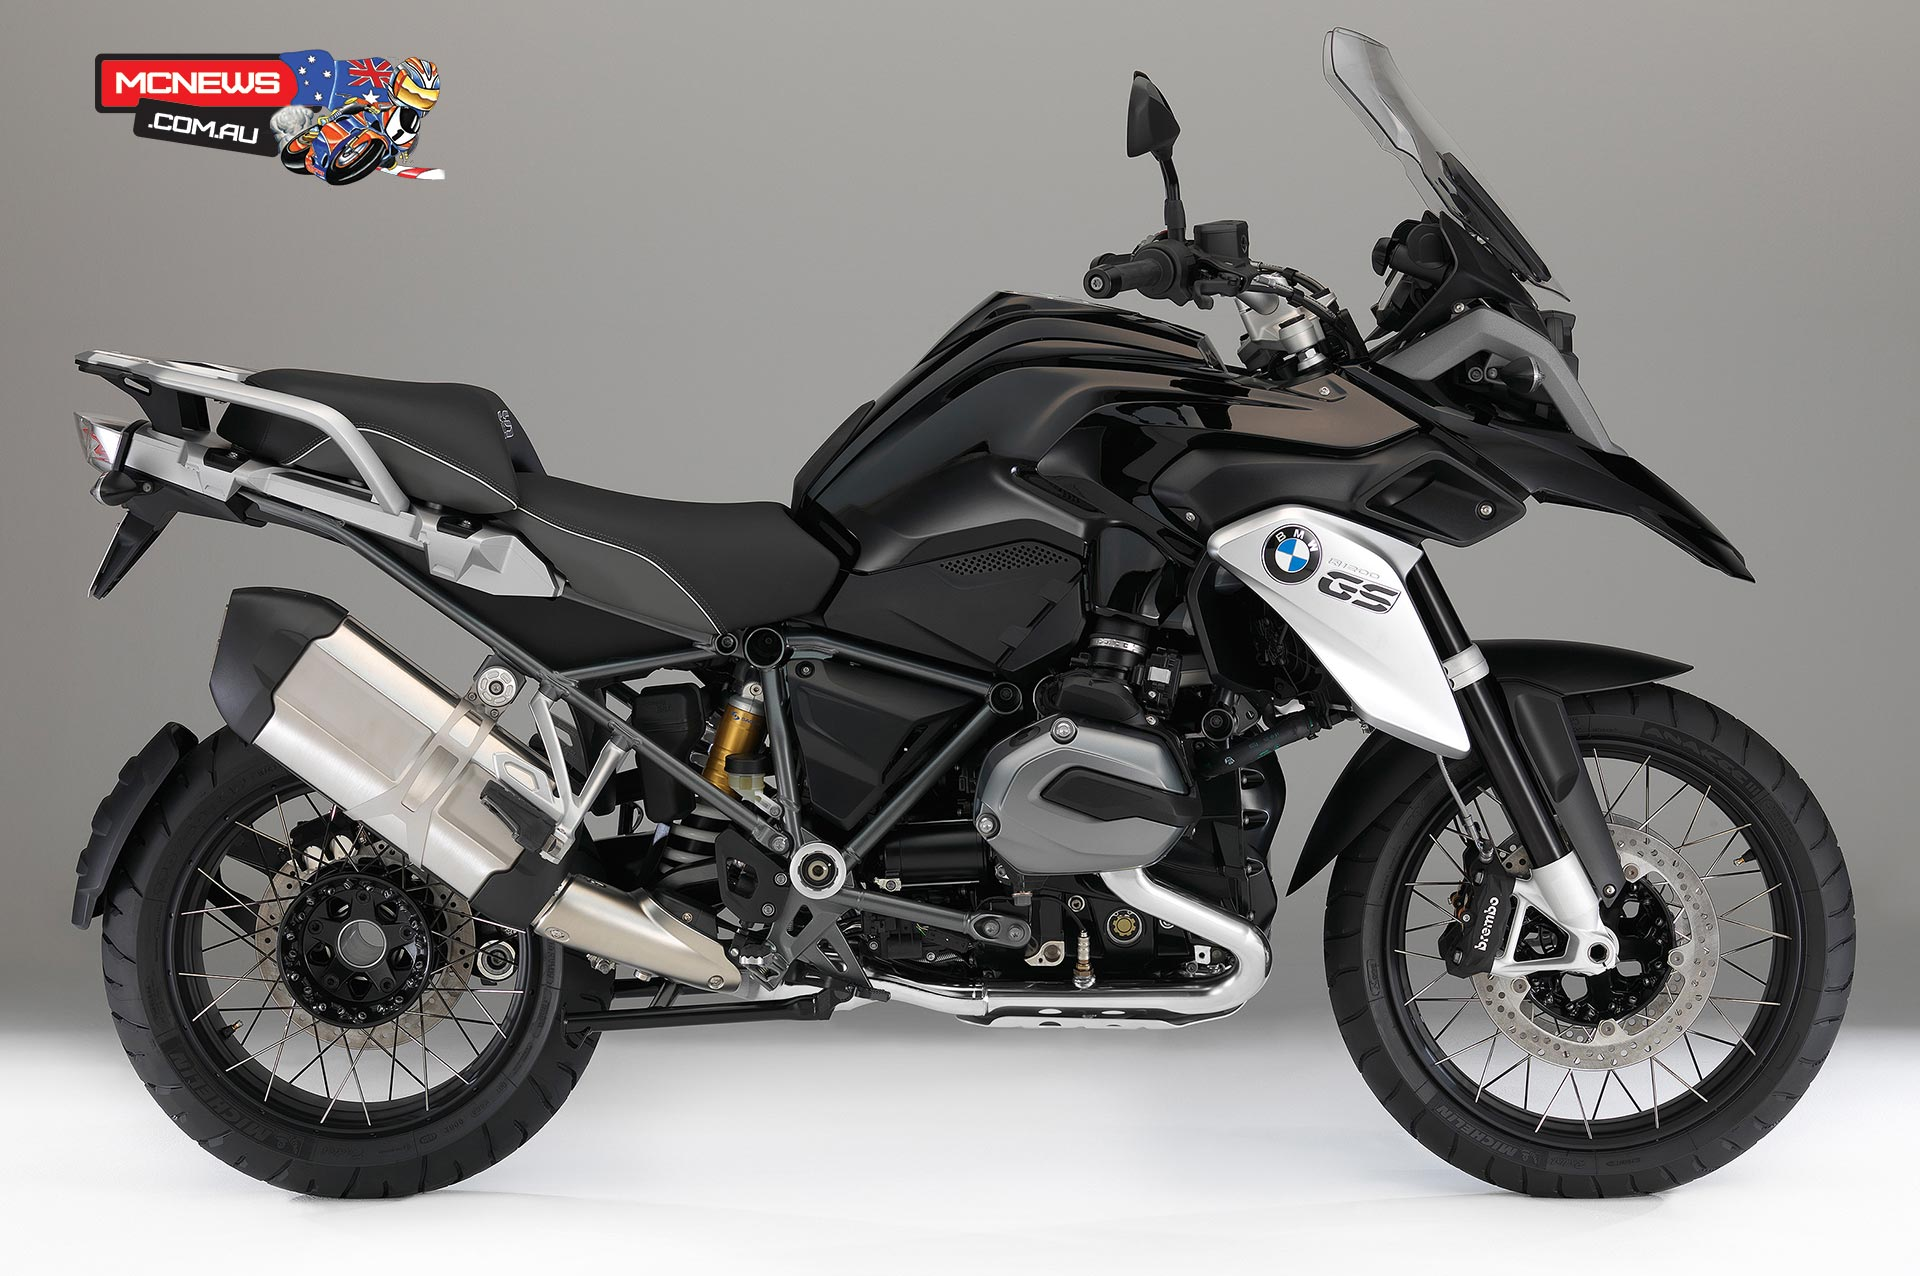 BMW R1200GS Adventure Triple Black 2013 images #8624